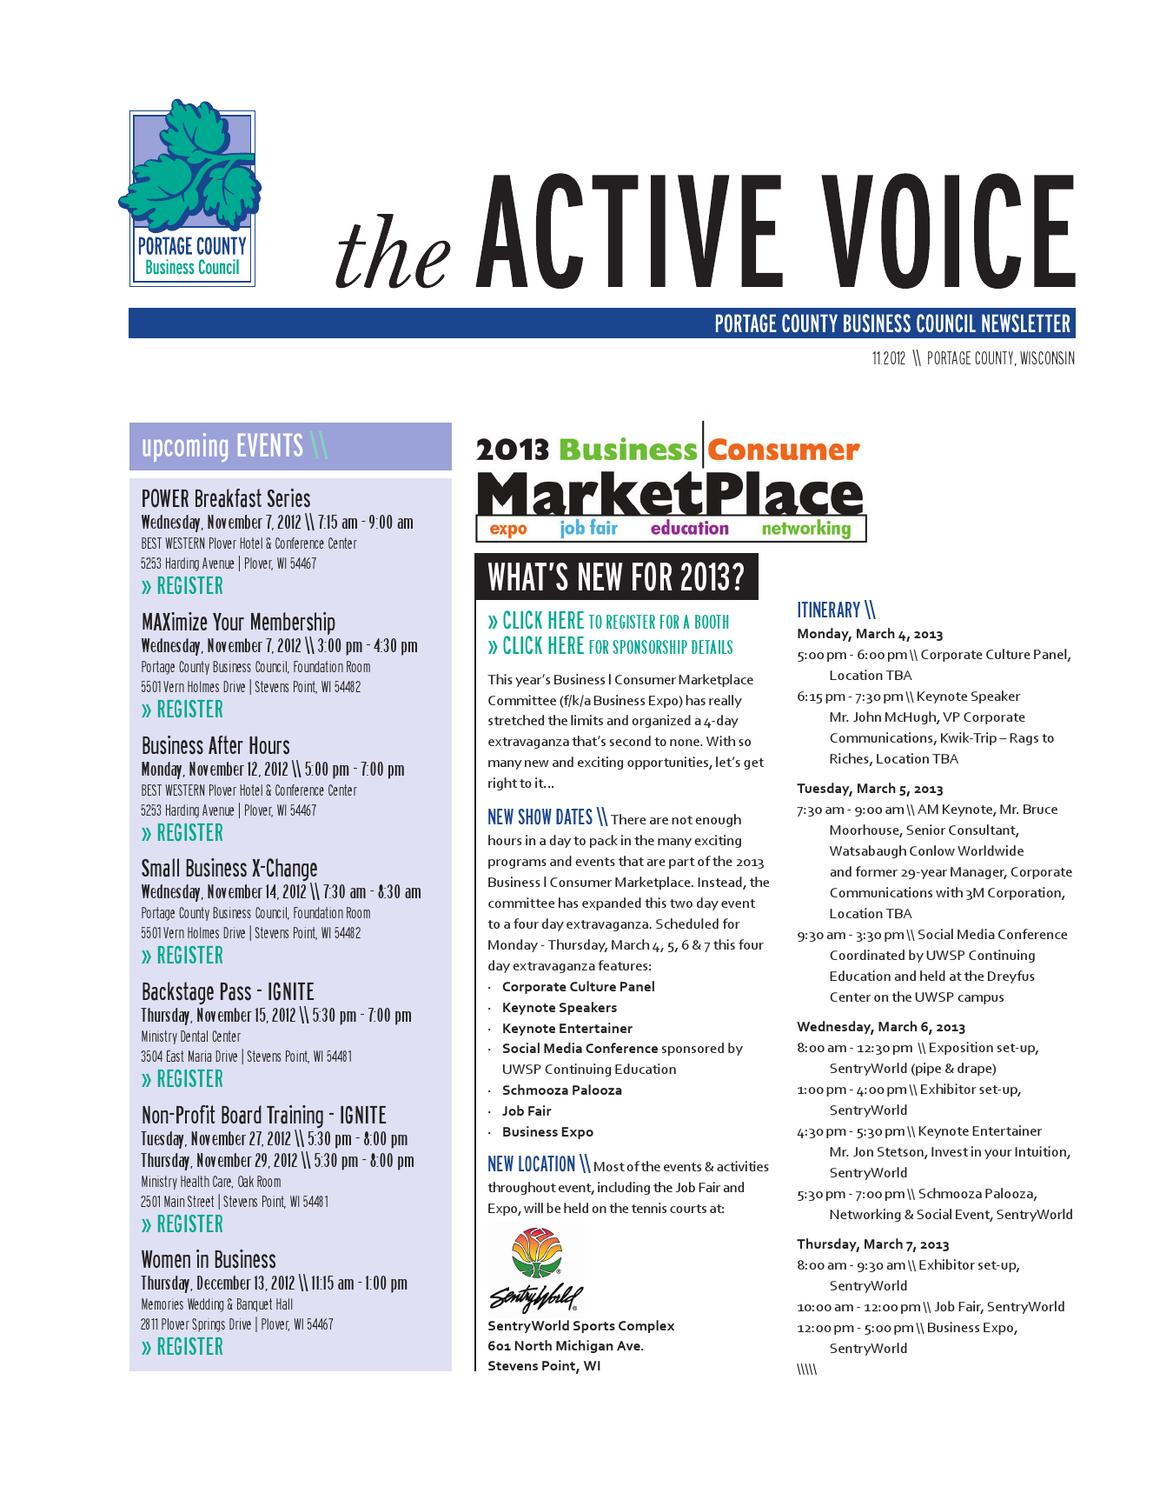 11 2012 The Active Voice Pcbc By Portage County Business Council